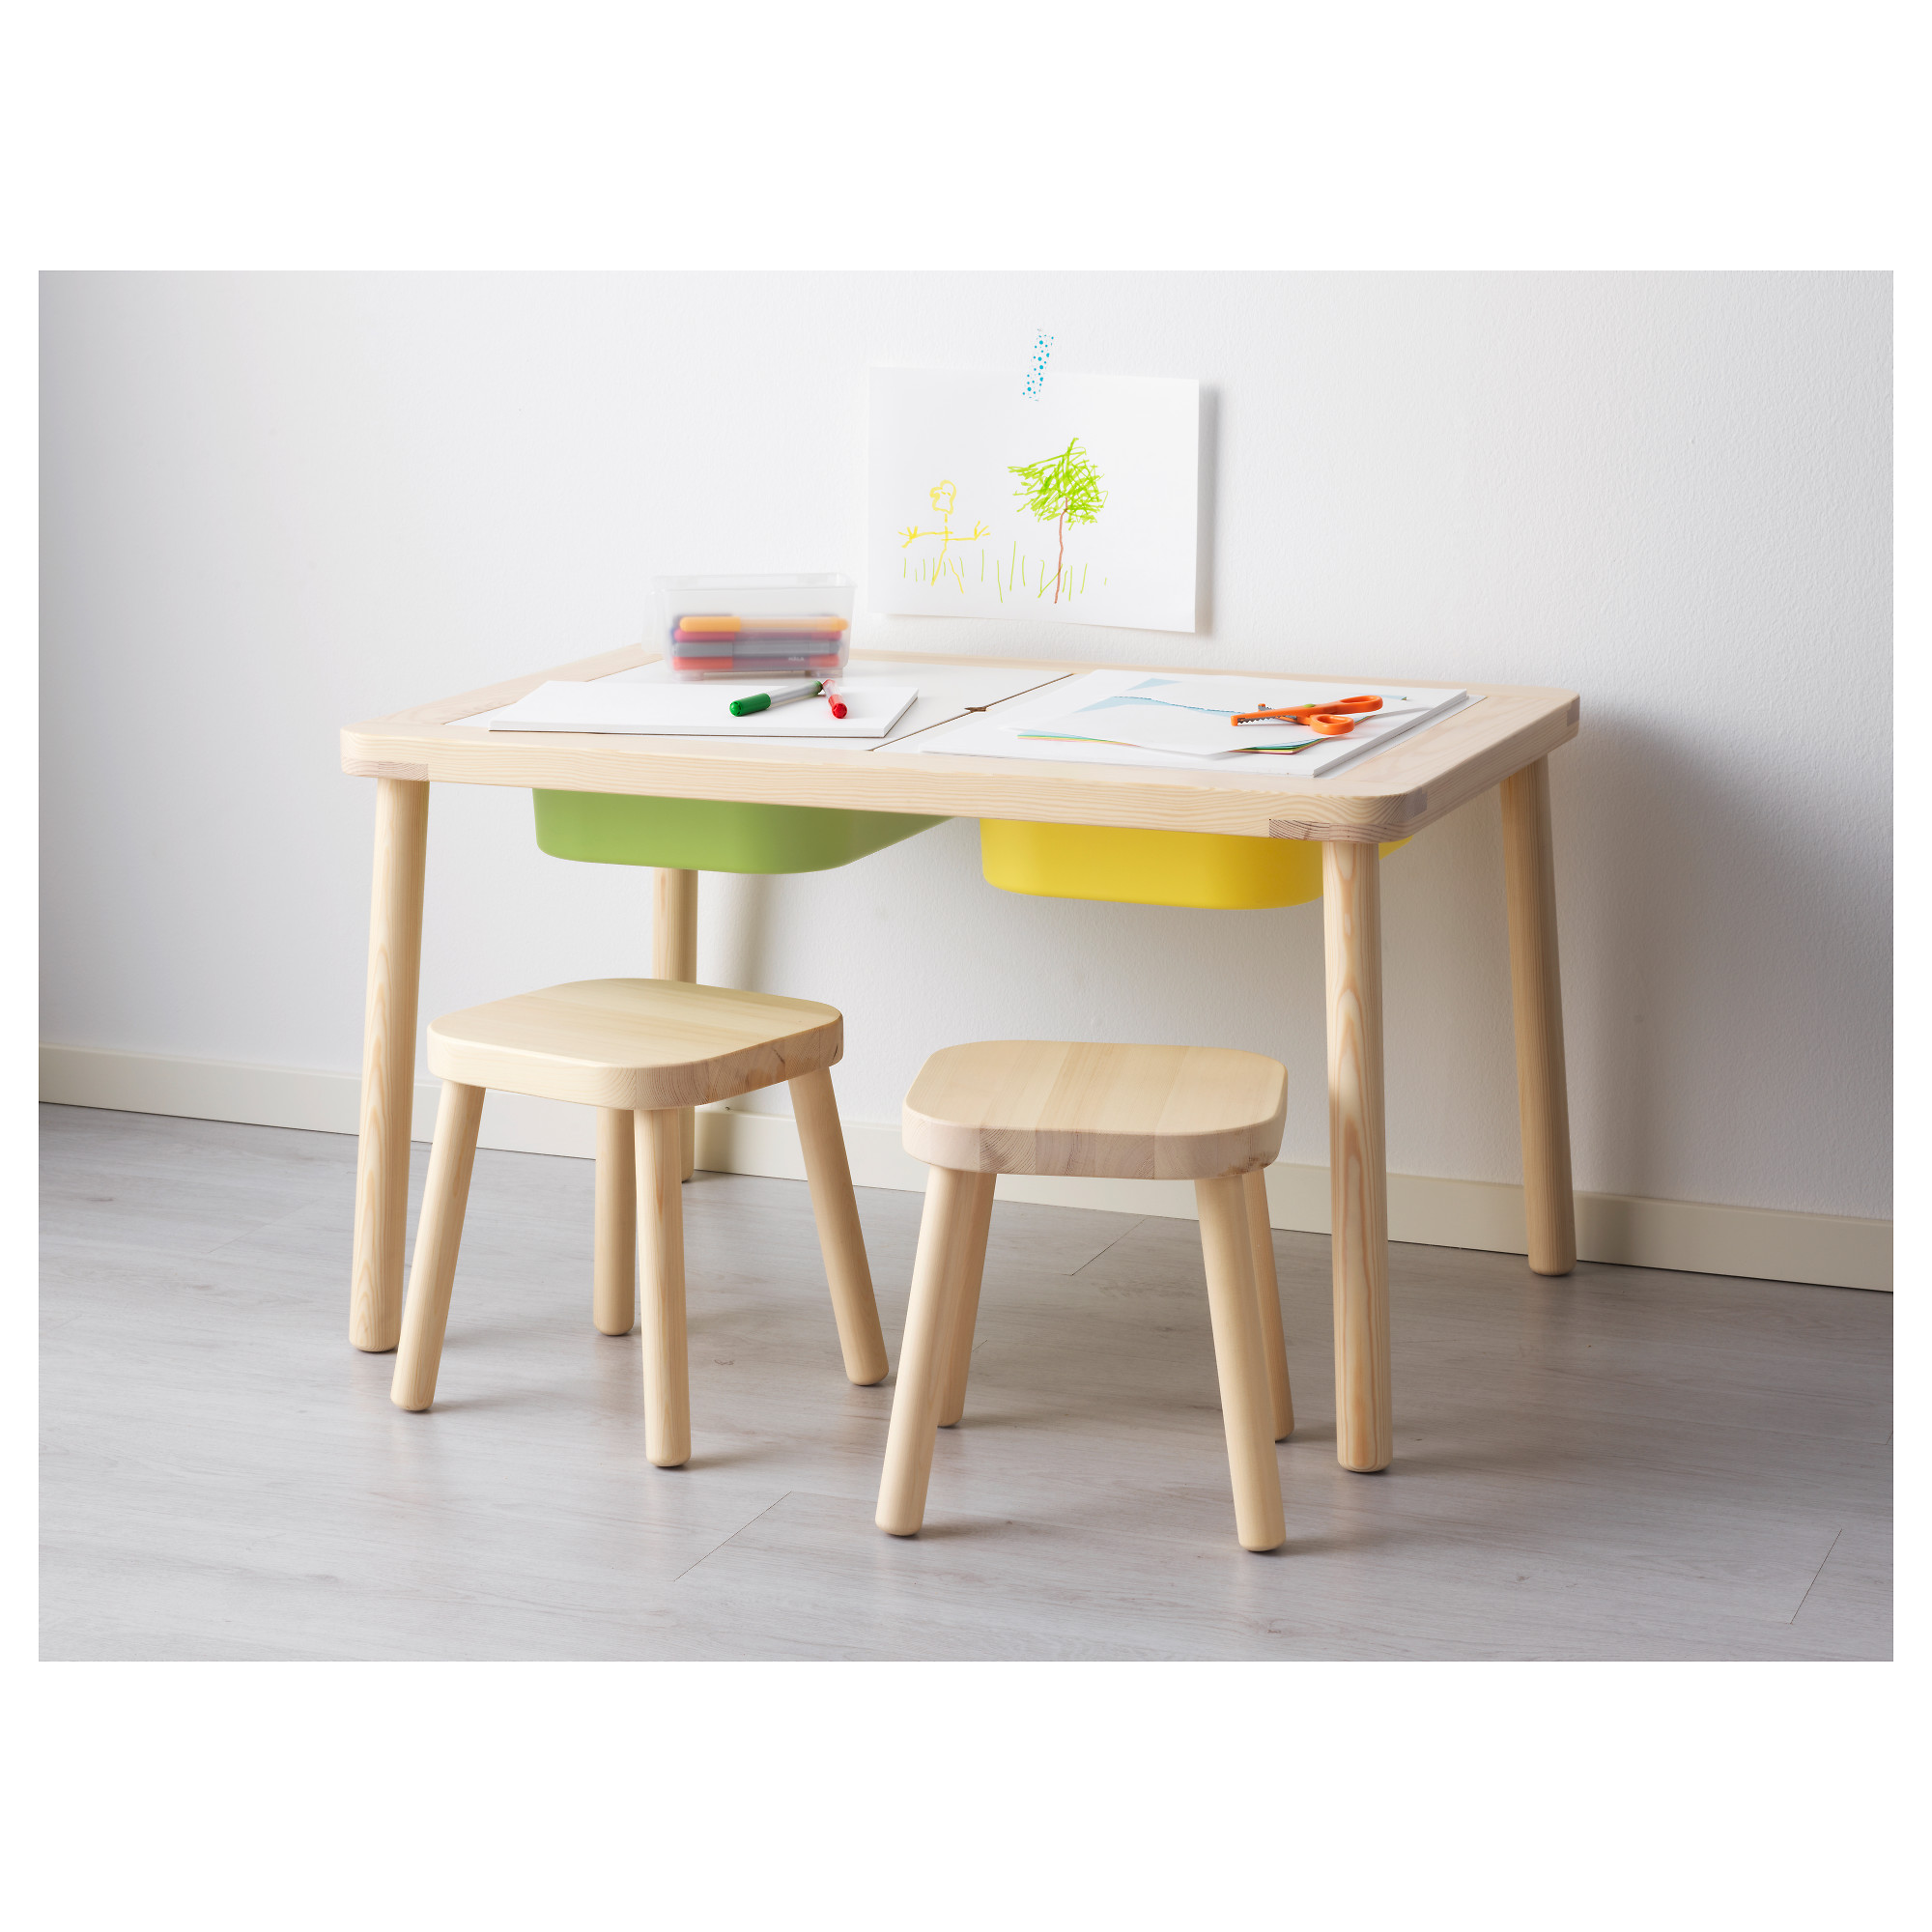 Ikea Kids Desk Furniture. Ikea Kids Desk Furniture - Lodzinfo.info